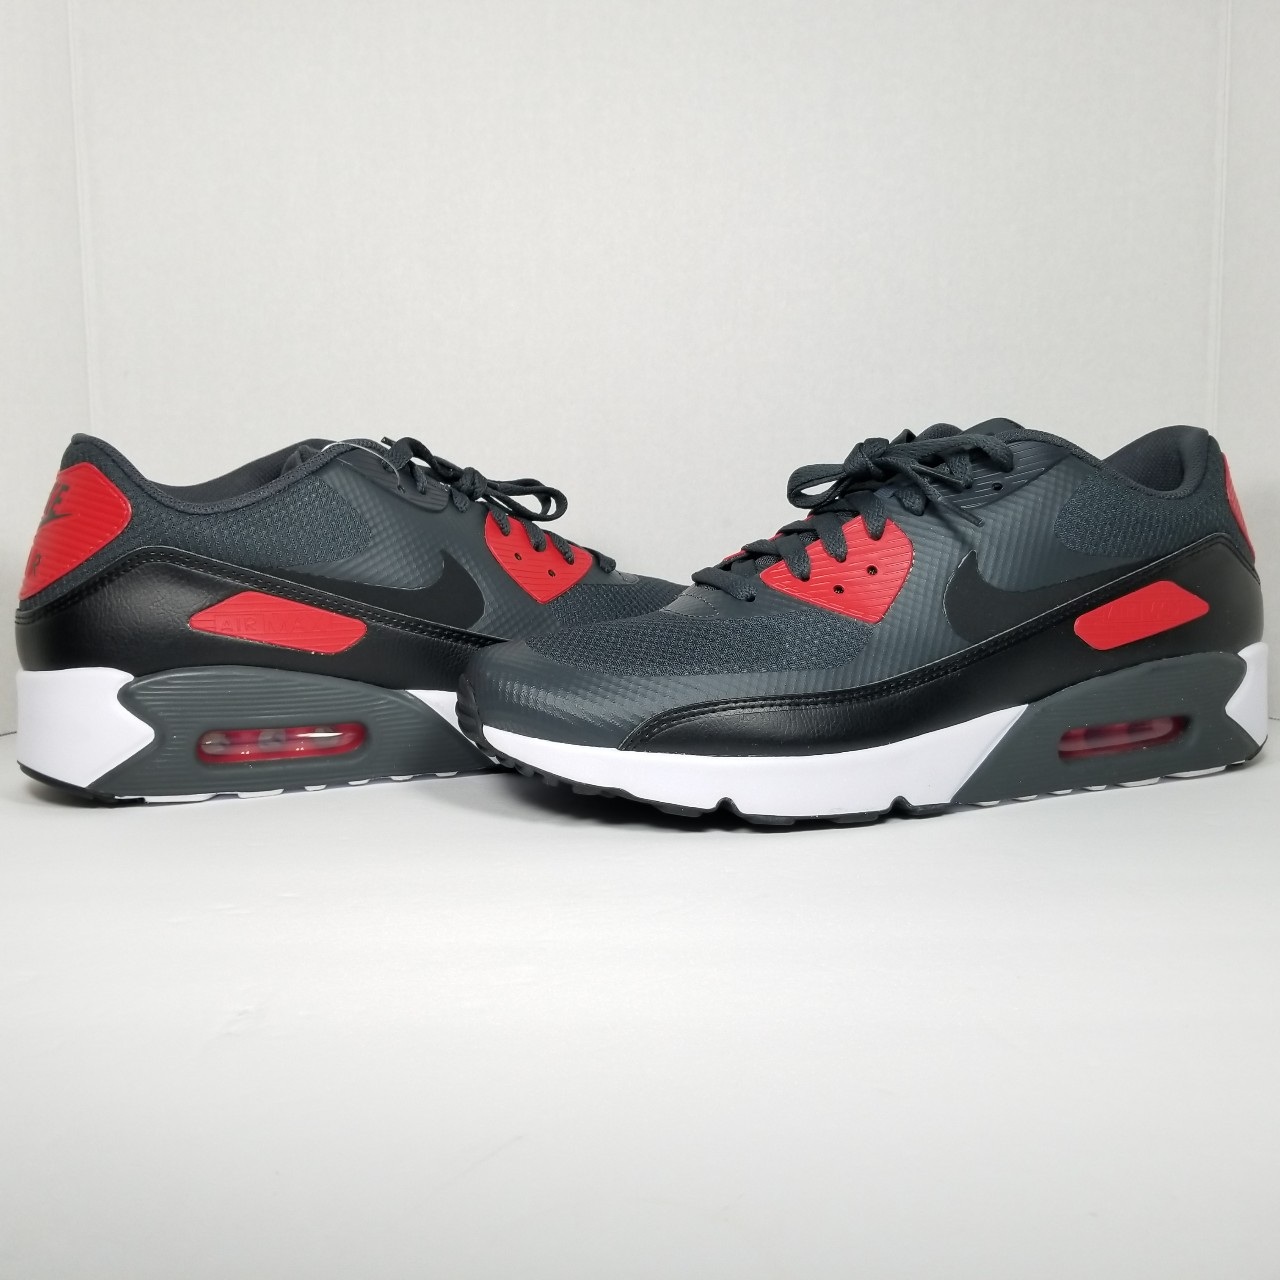 MENS NIKE AIR MAX 90 SIZE 12 NEW WITH BOX NWT